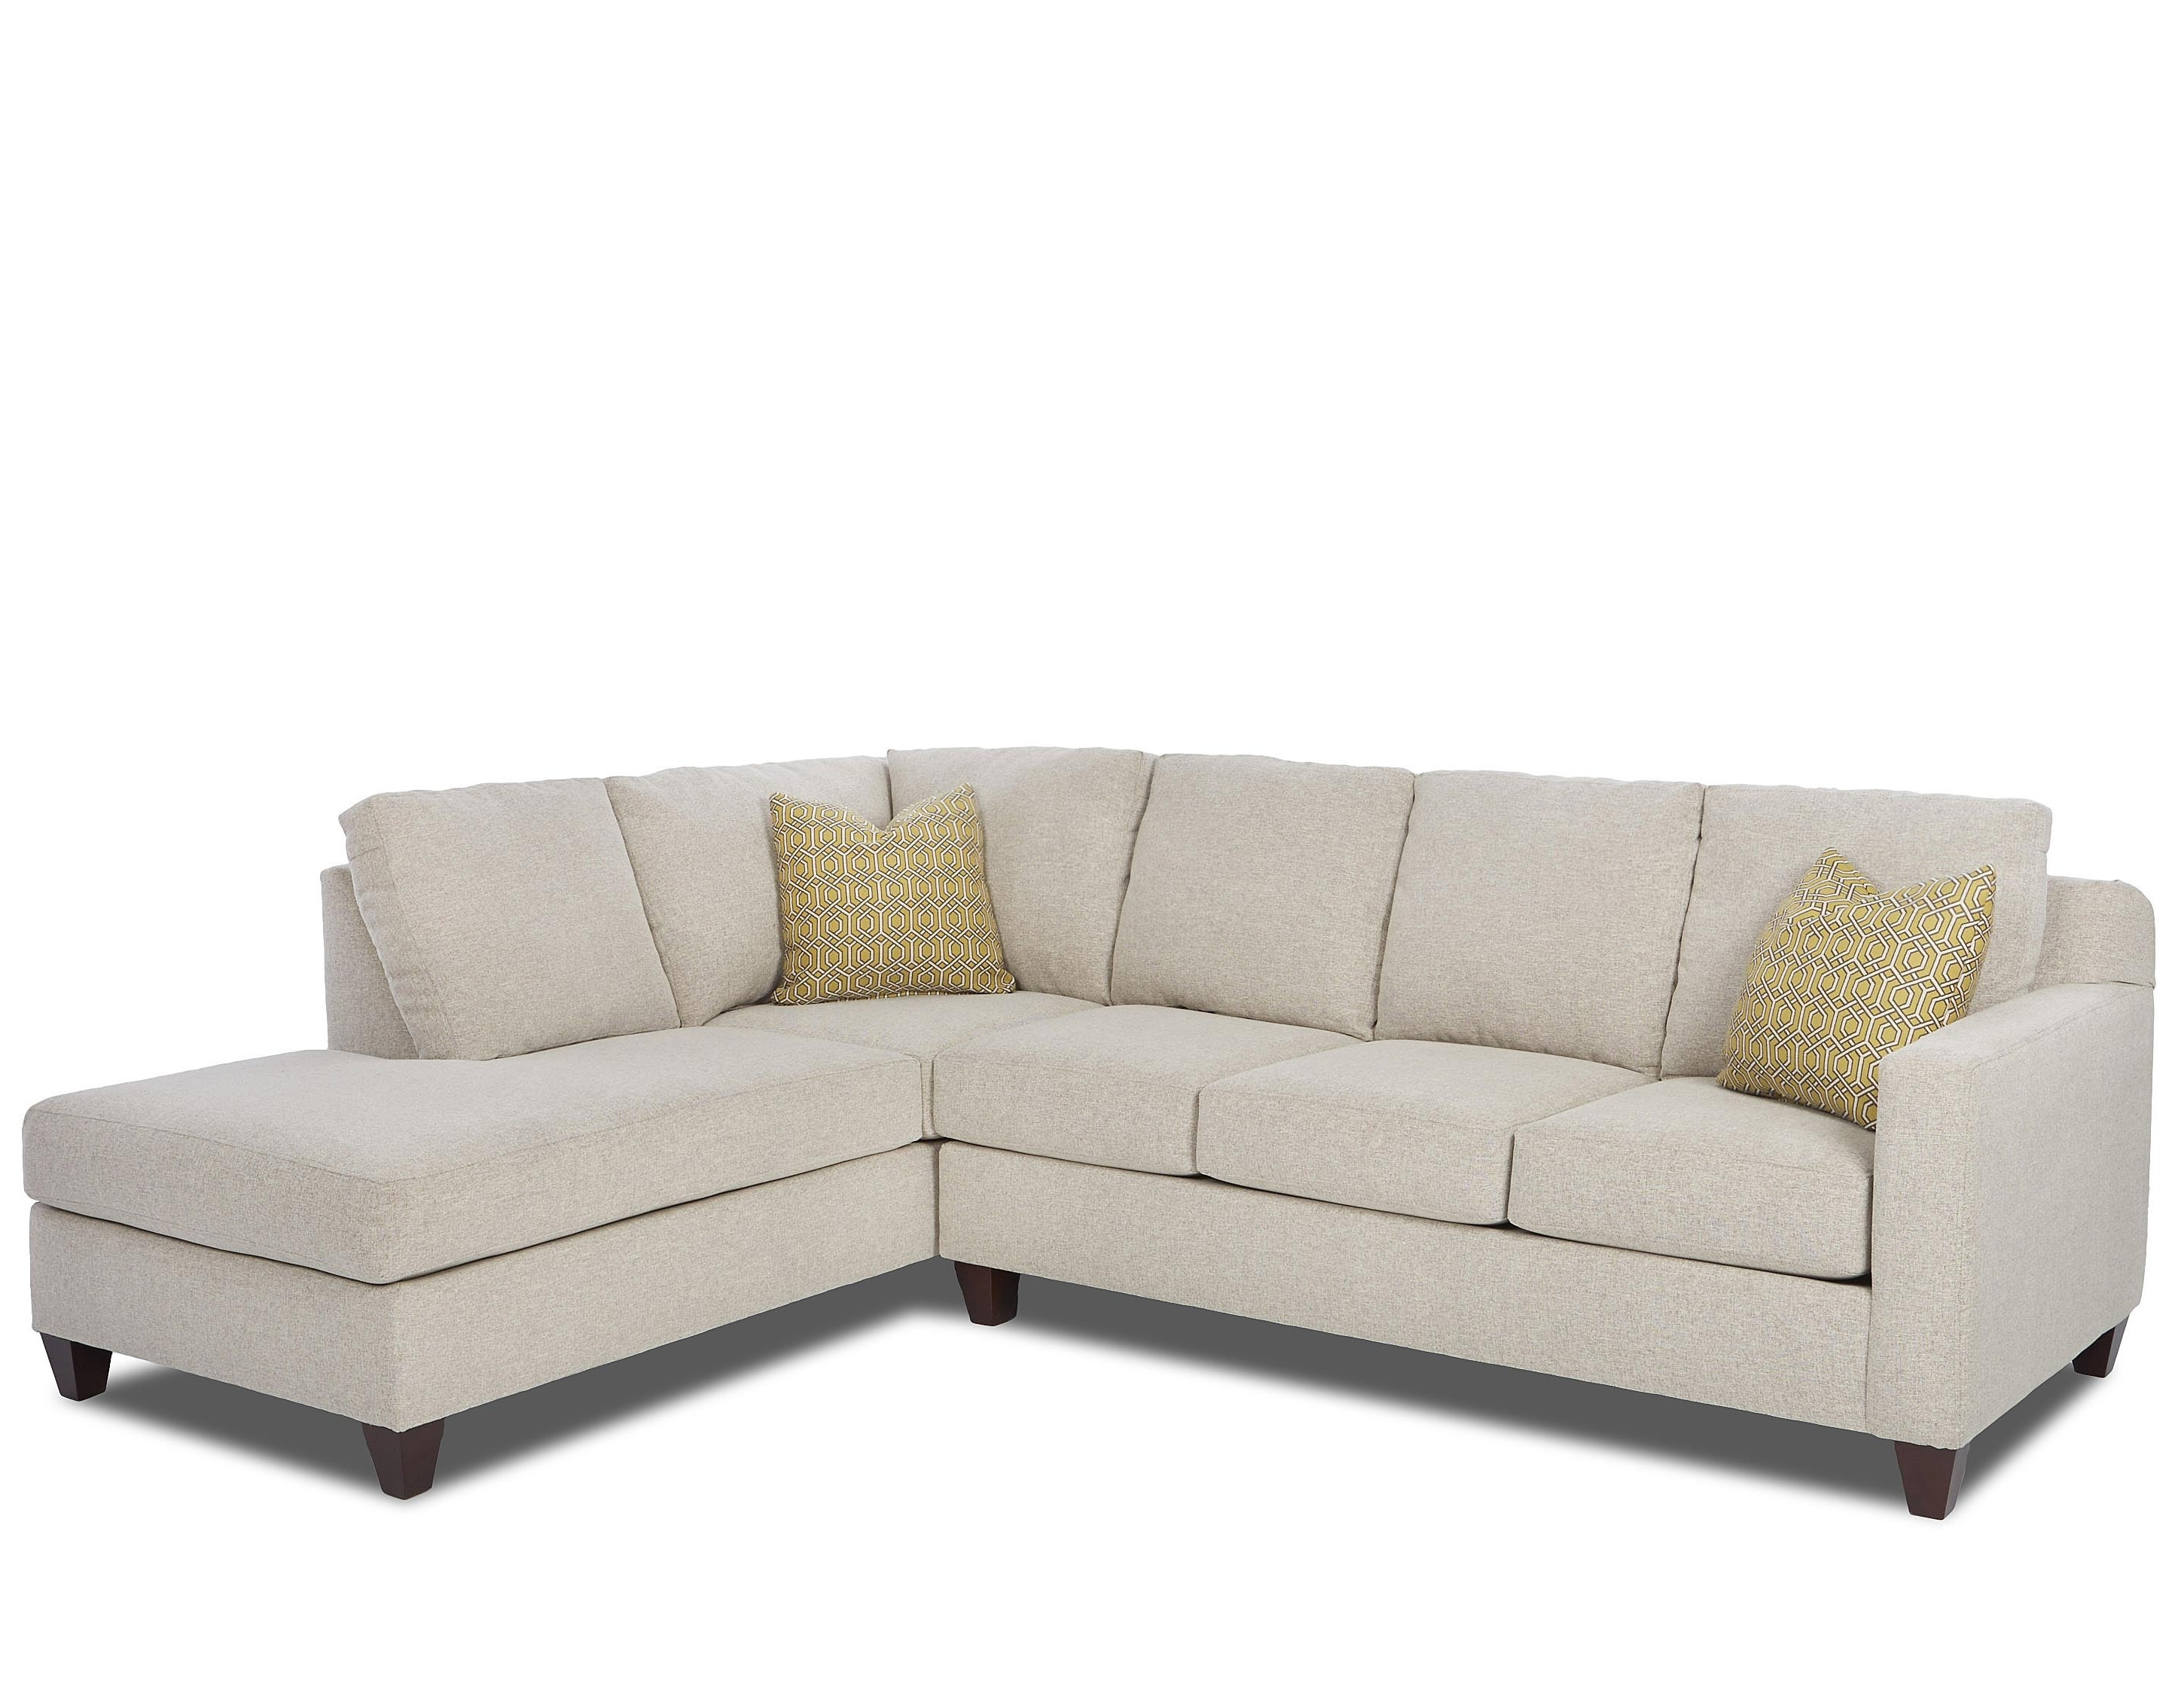 Right Arm Chaises Intended For Well Liked Contemporary 2 Piece Sectional With Right Arm Facing Sofa Chaise (View 4 of 15)